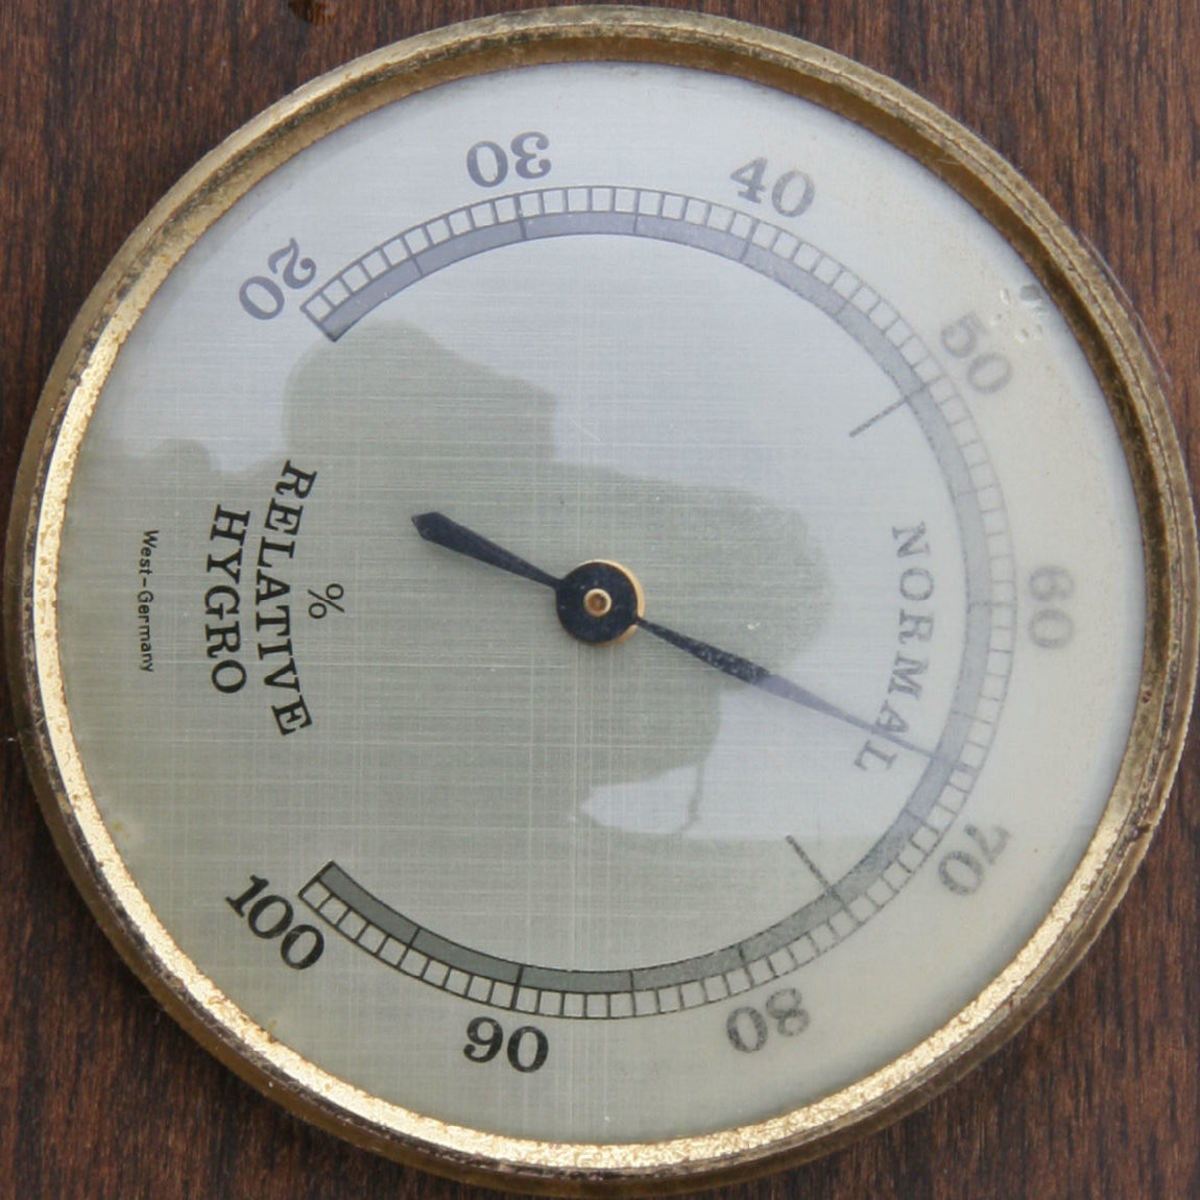 Heres's what a real hygrometer looks like.